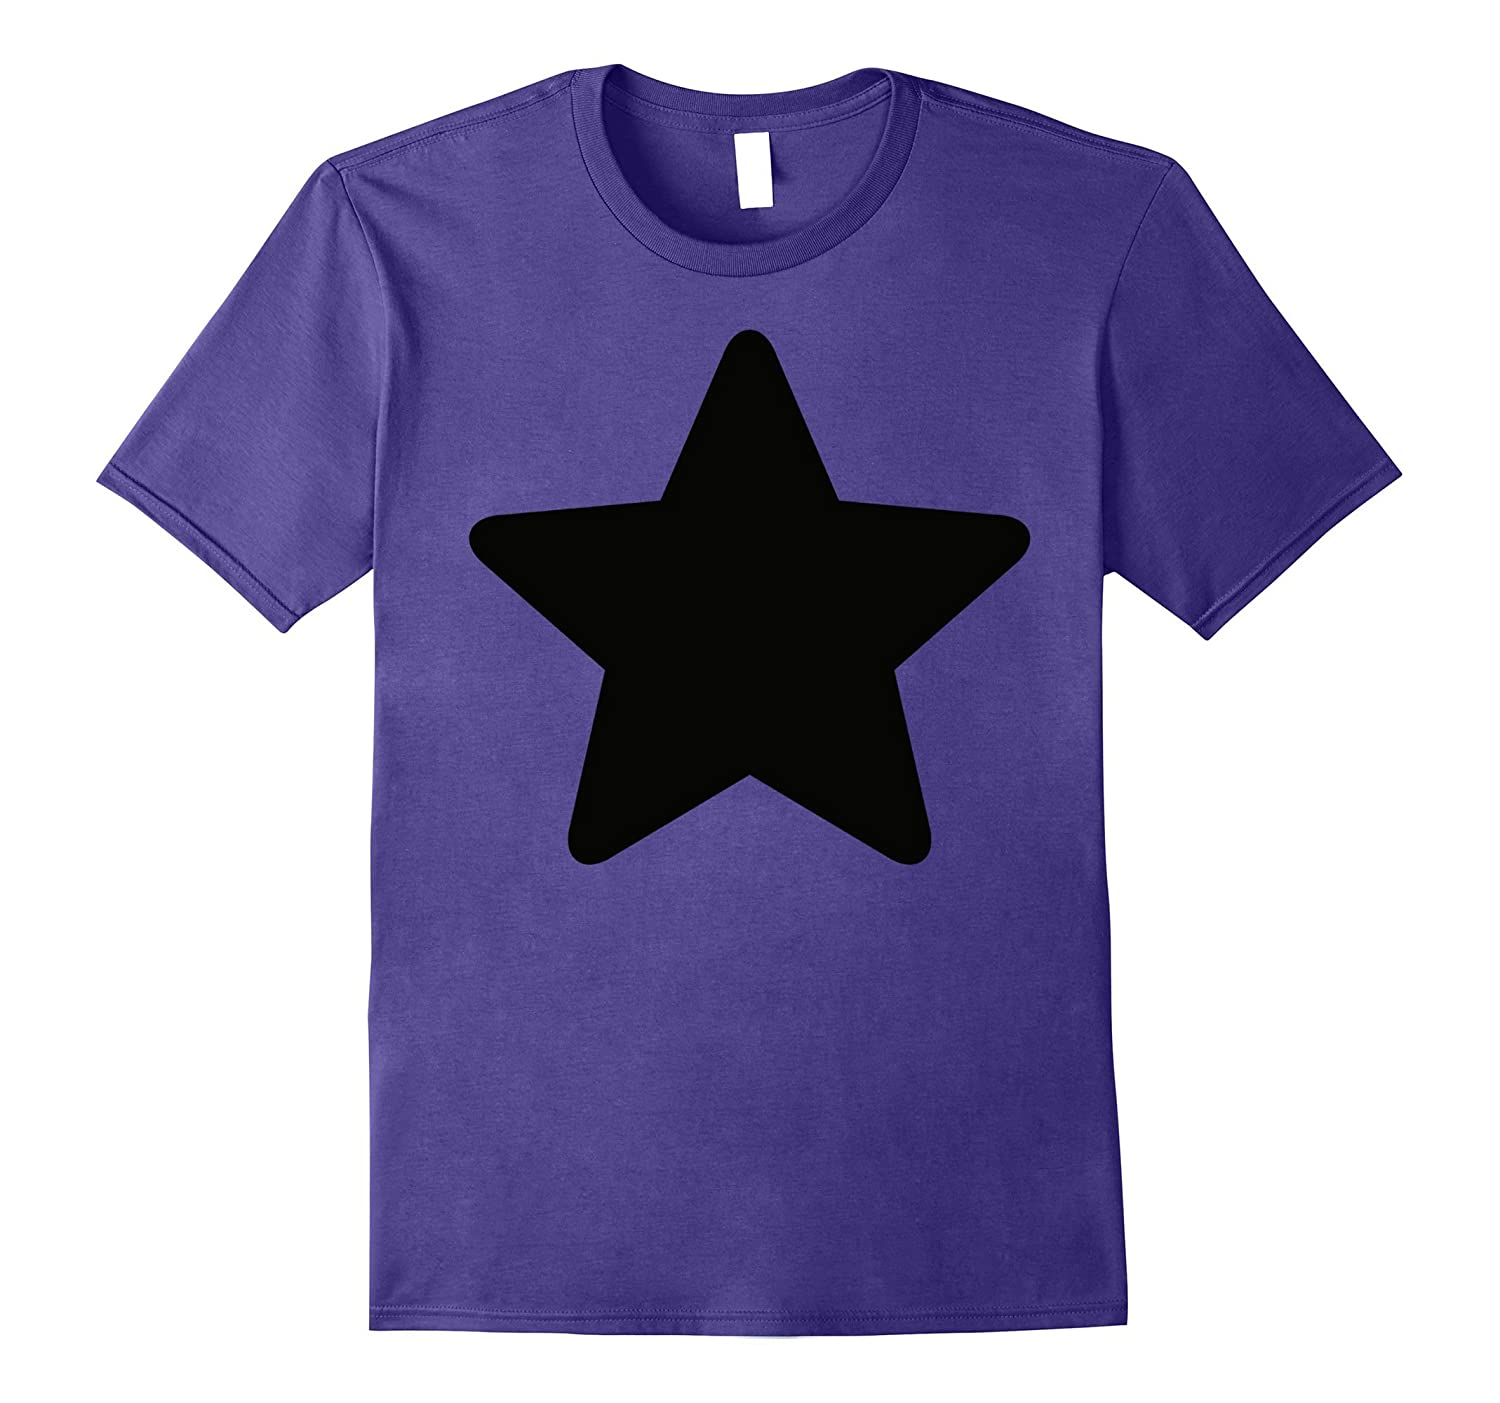 CN Steven Universe Amethyst Black Star Icon Graphic T-Shirt